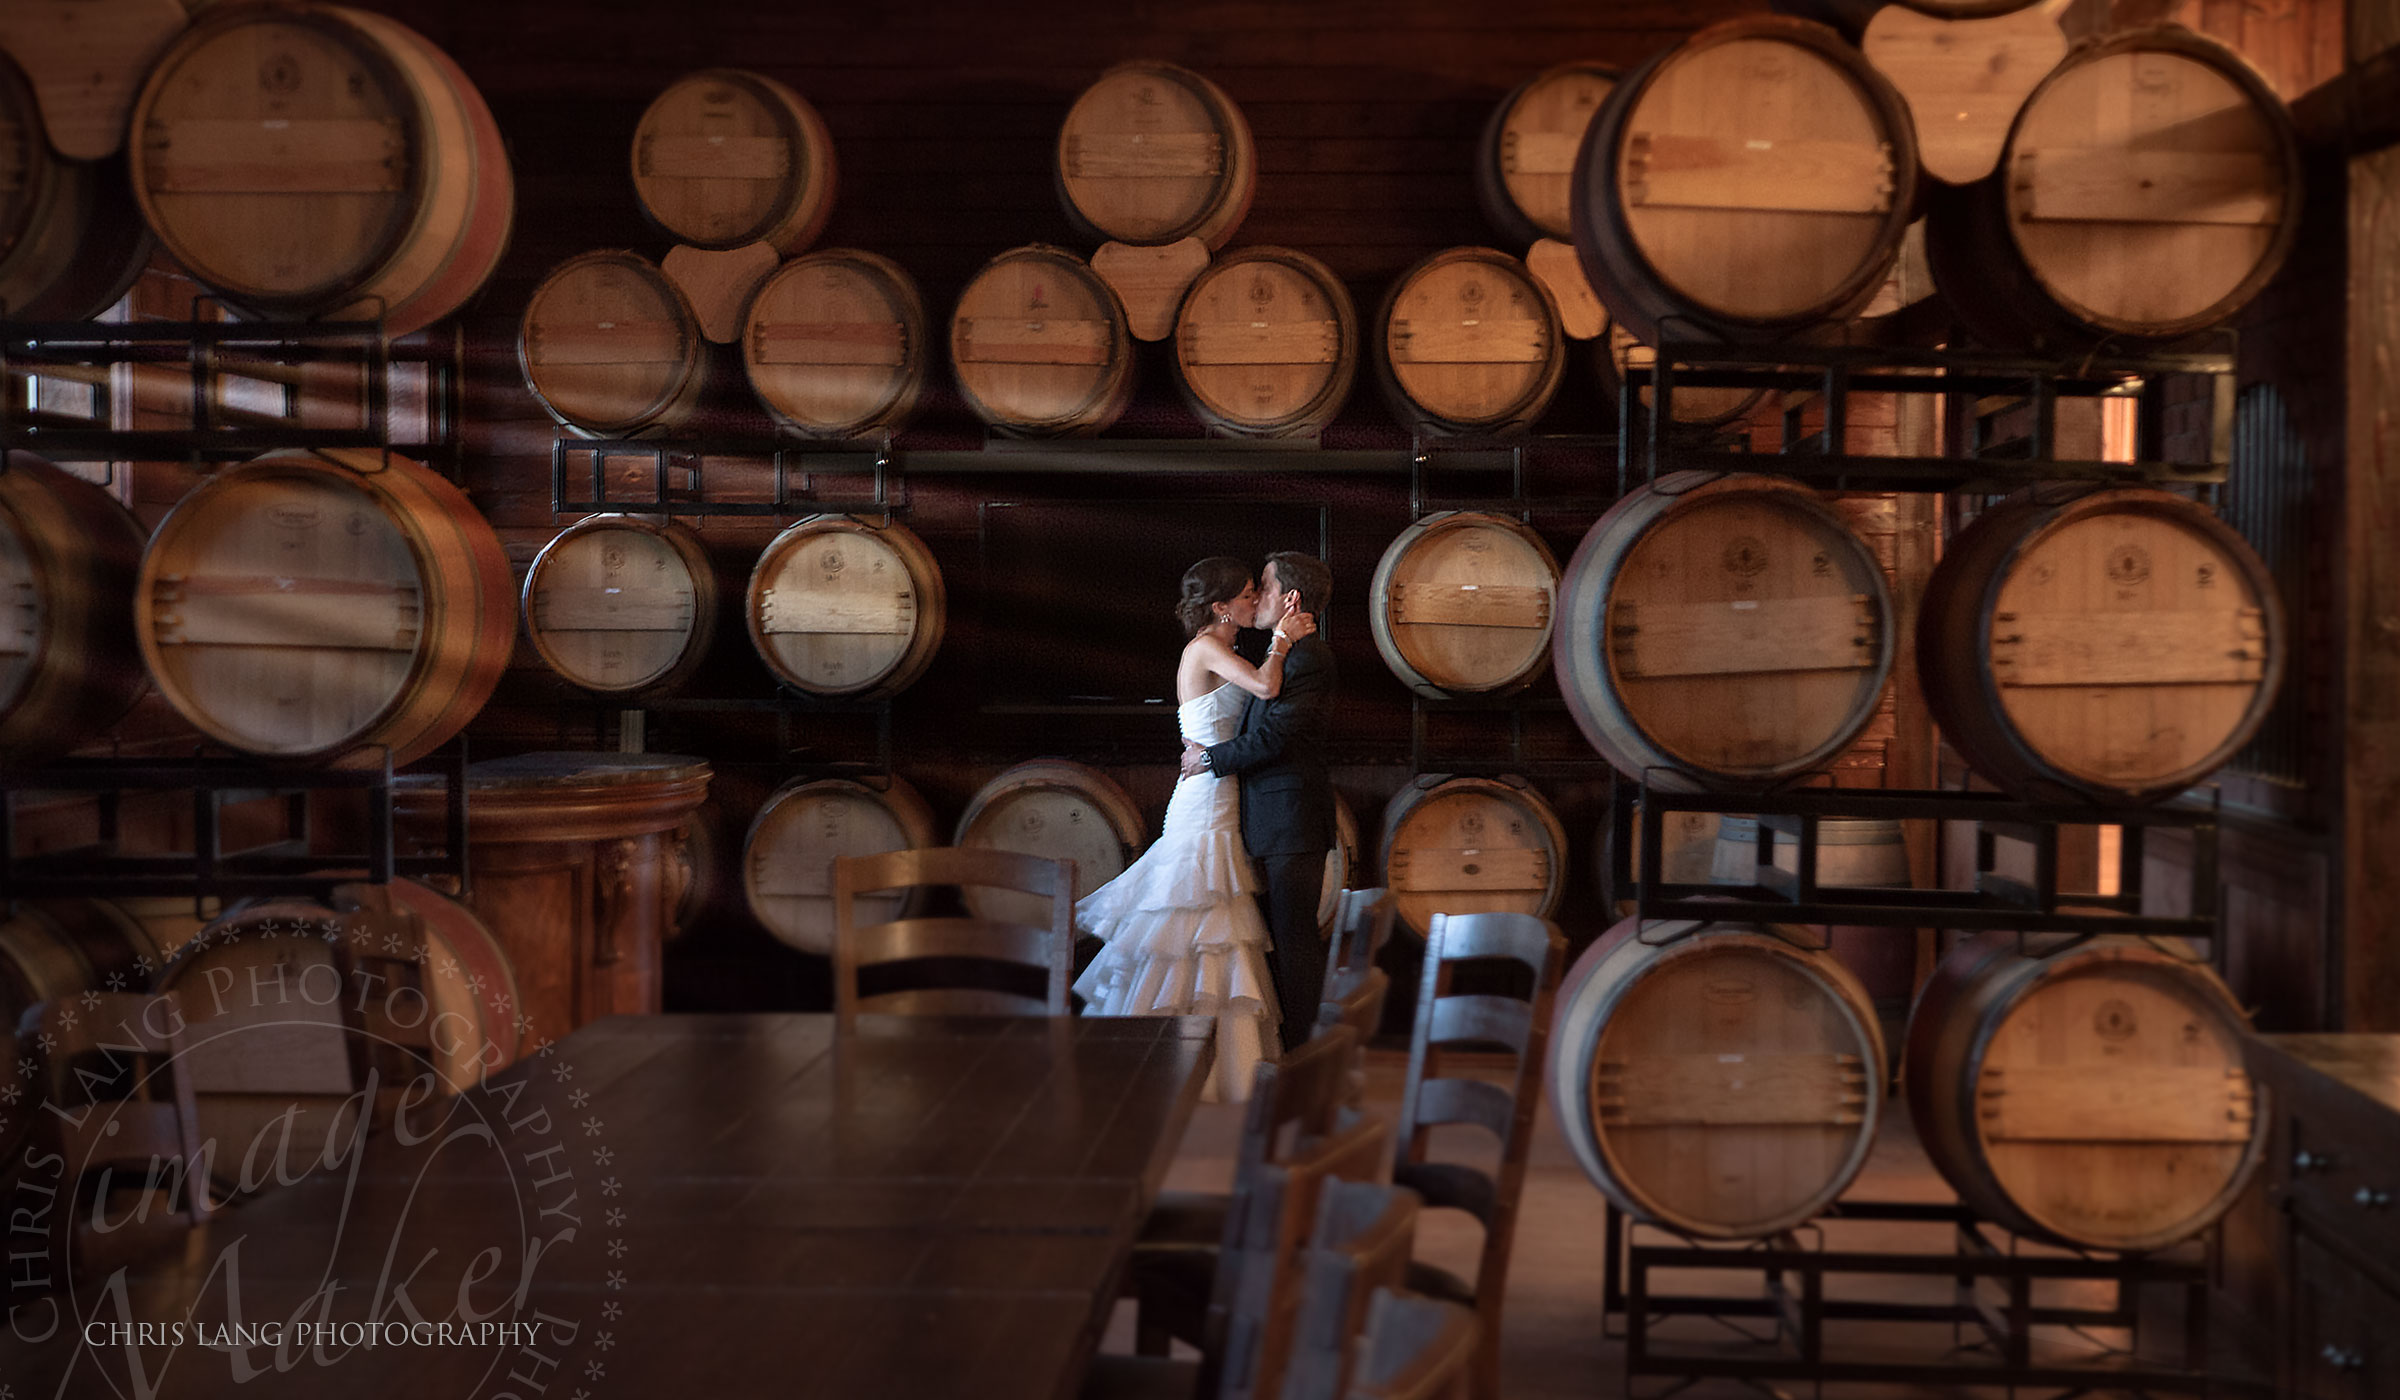 Bride and groom kissingi in a winery inbetween wine barrels - Wedding Photograpy Ideas -lWIlmington NC Wedding Photographers -